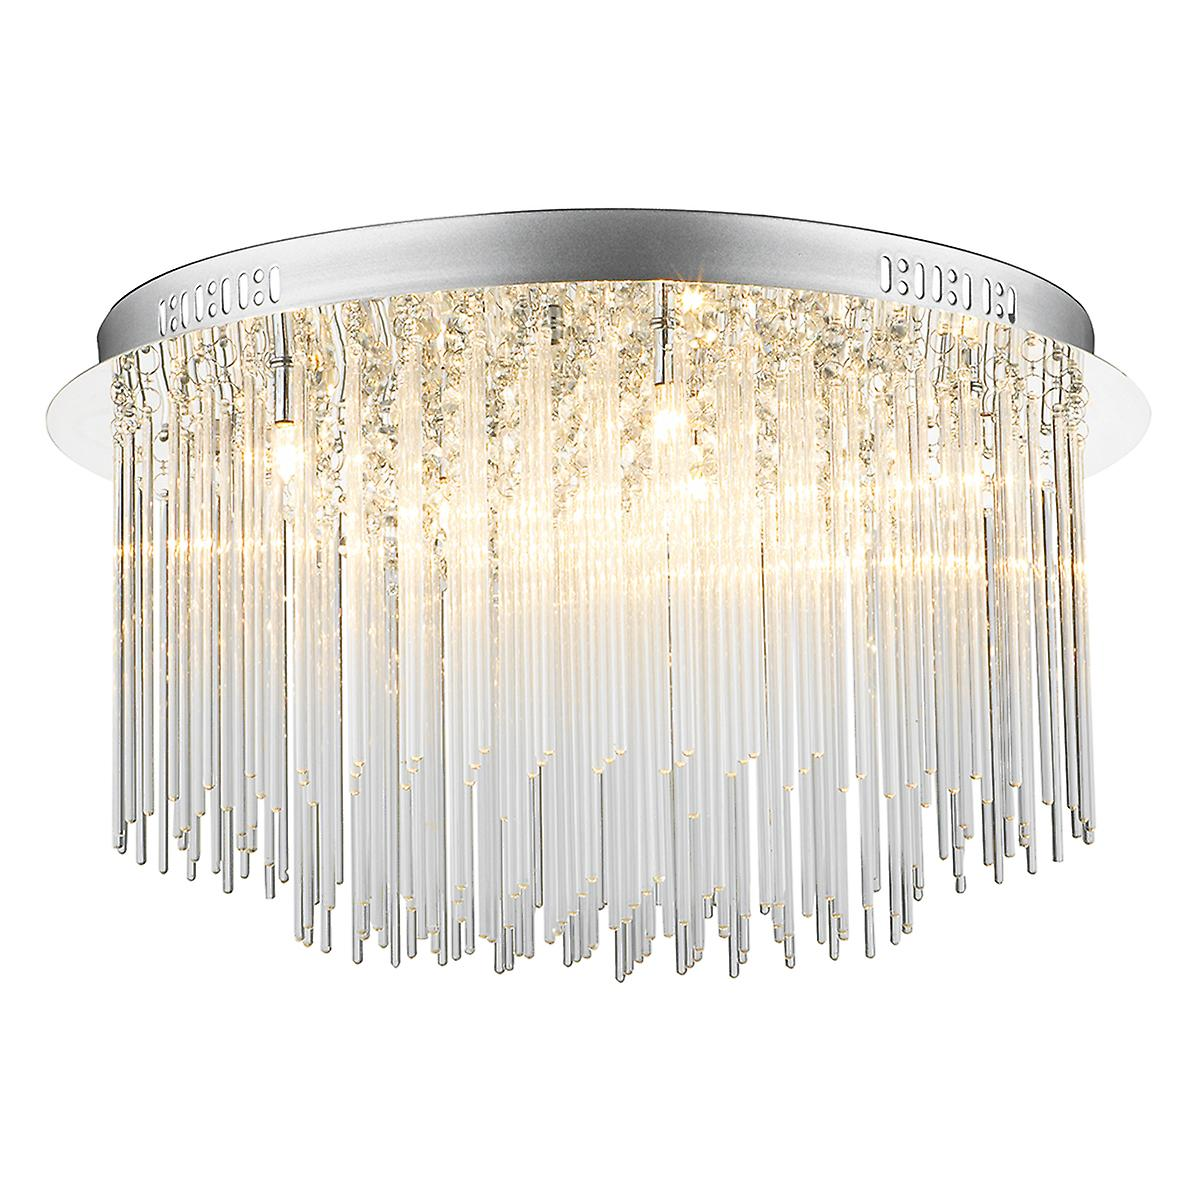 Dar ICI4850 Icicle Crystal Glass Halogen Ceiling Flush Light